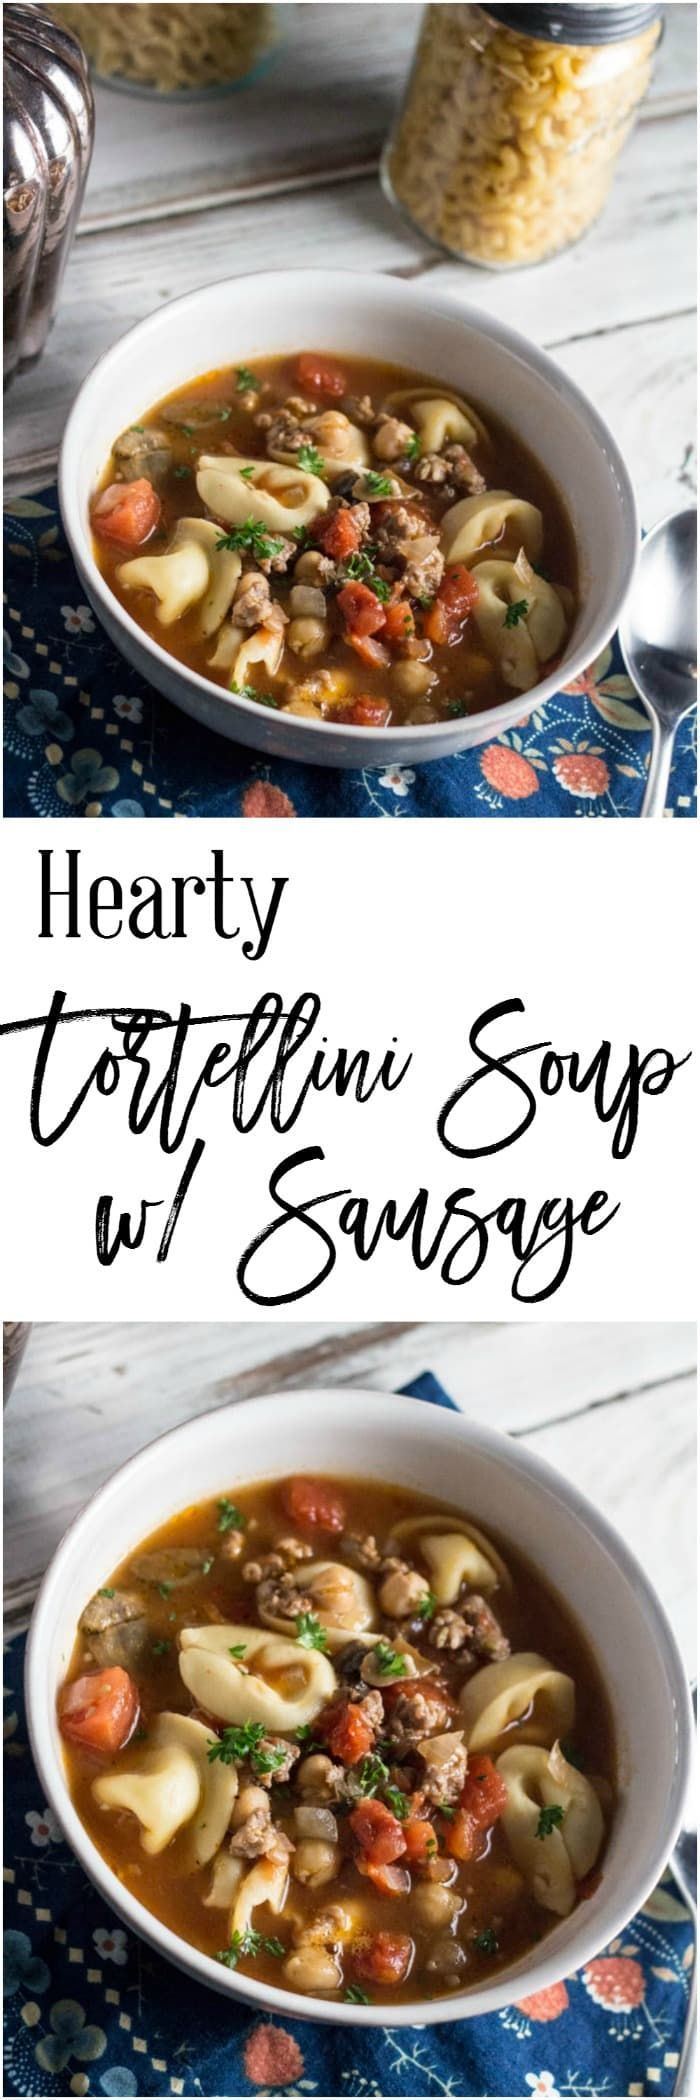 If you are looking for a soup that is hearty and delicious, look no further. This hearty tortellini soup with sausage is perfect for either a wonderful lunch.  This recipe is Weight Watcher friendly too, at only 9 SmartPoints per serving!  https://dashofherbs.com/hearty-tortellini-soup-sausage/